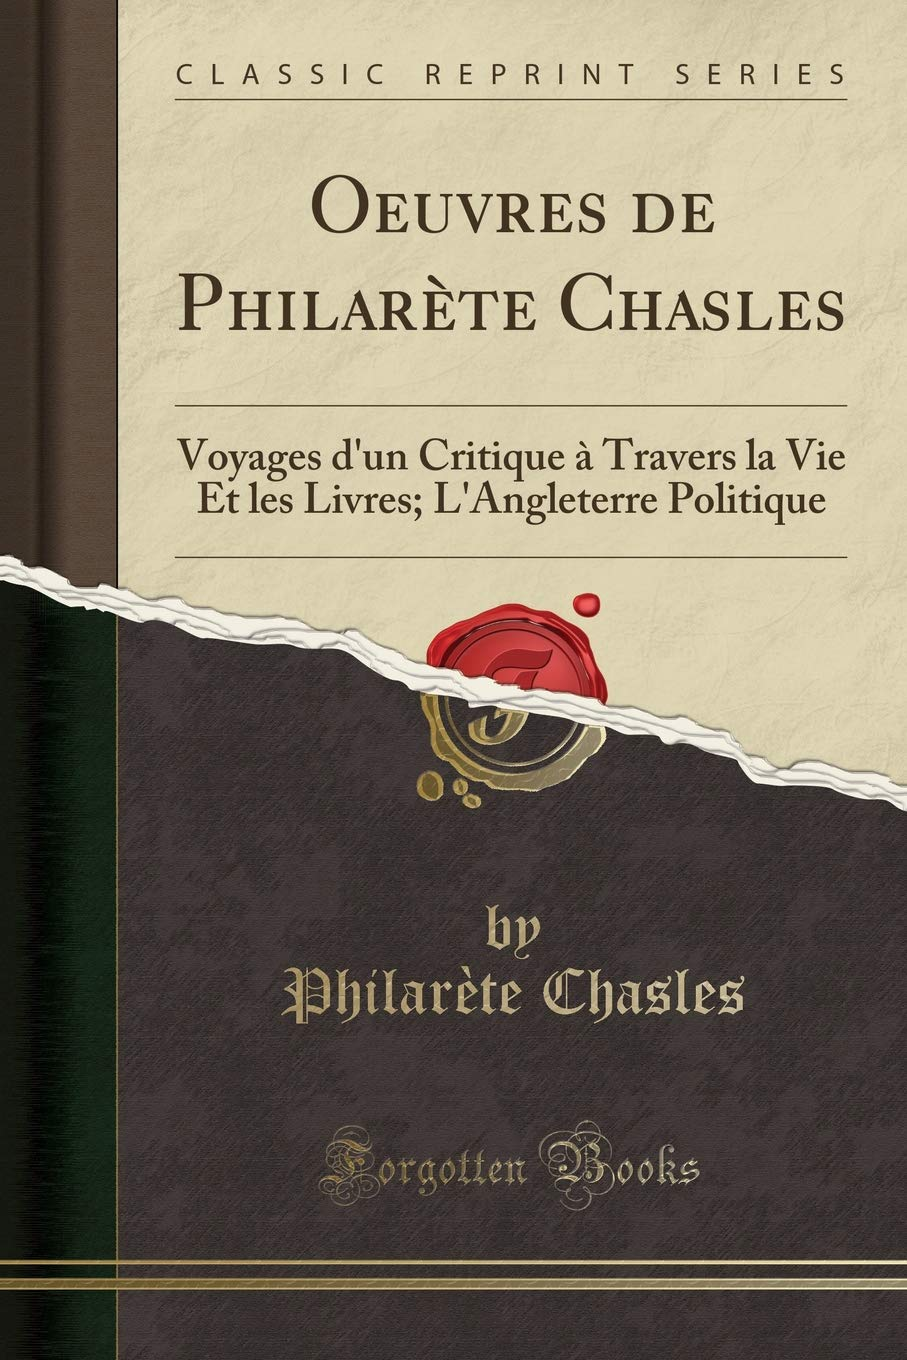 Resources for Philarète Chasles